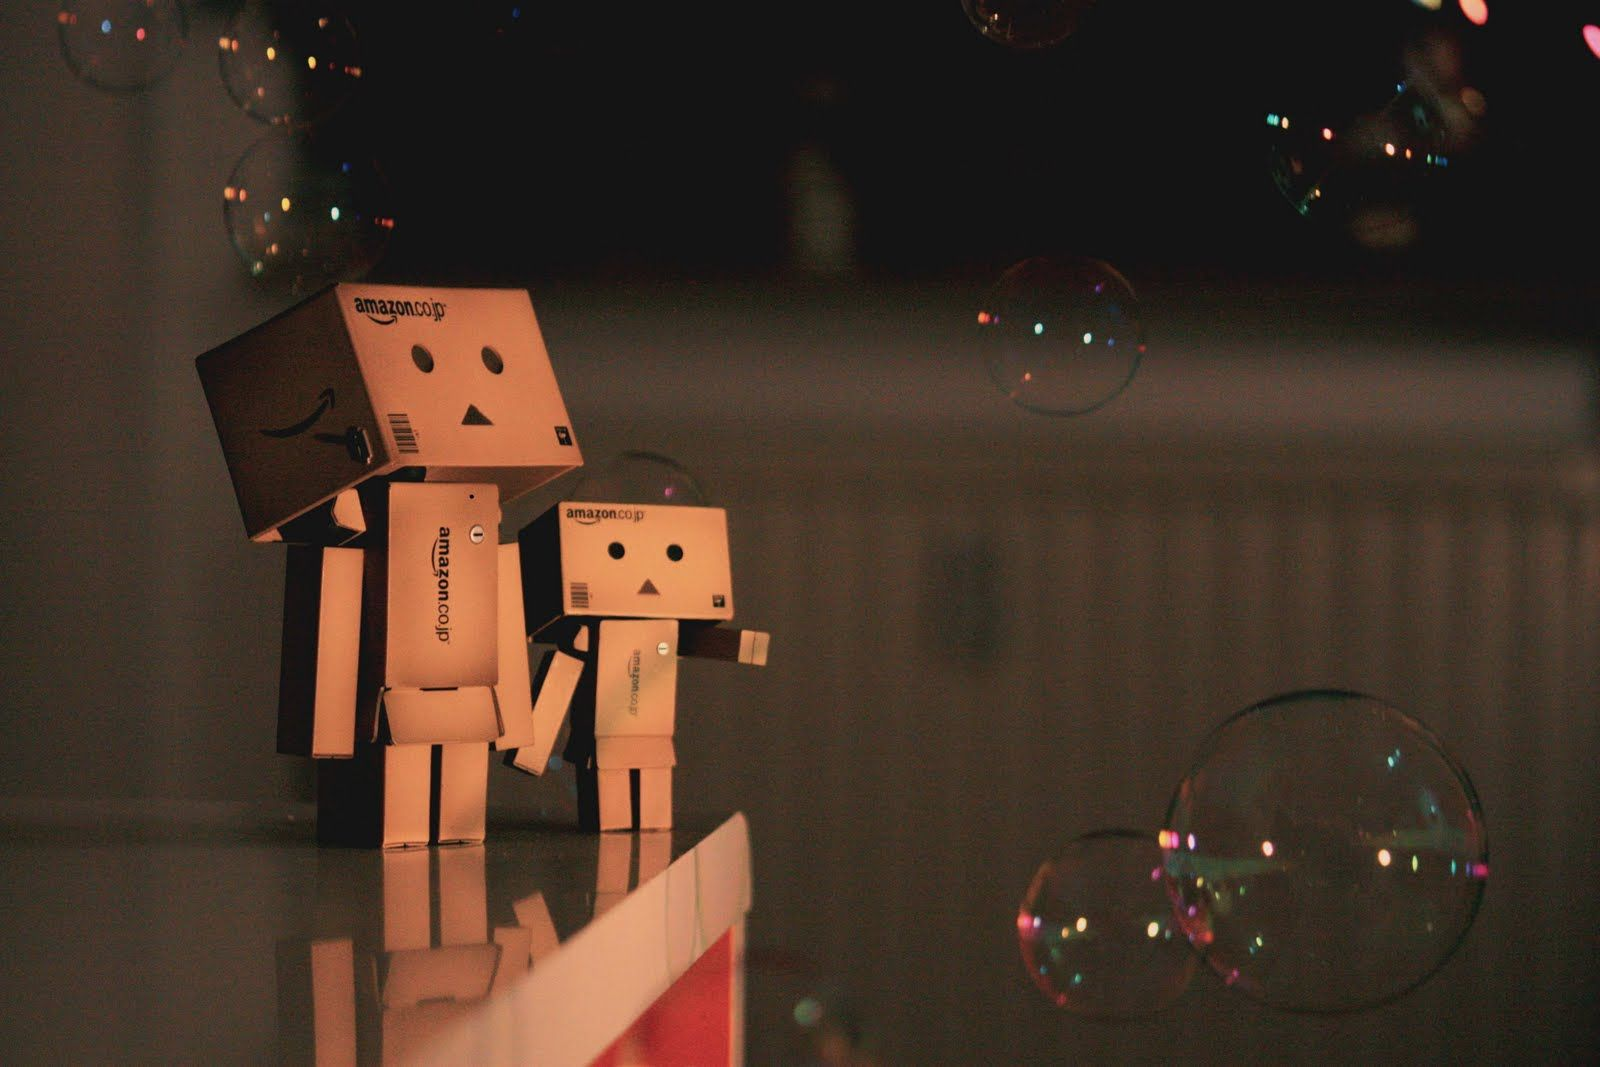 Box People Photographyworld Danbo Wallpaper Family Box